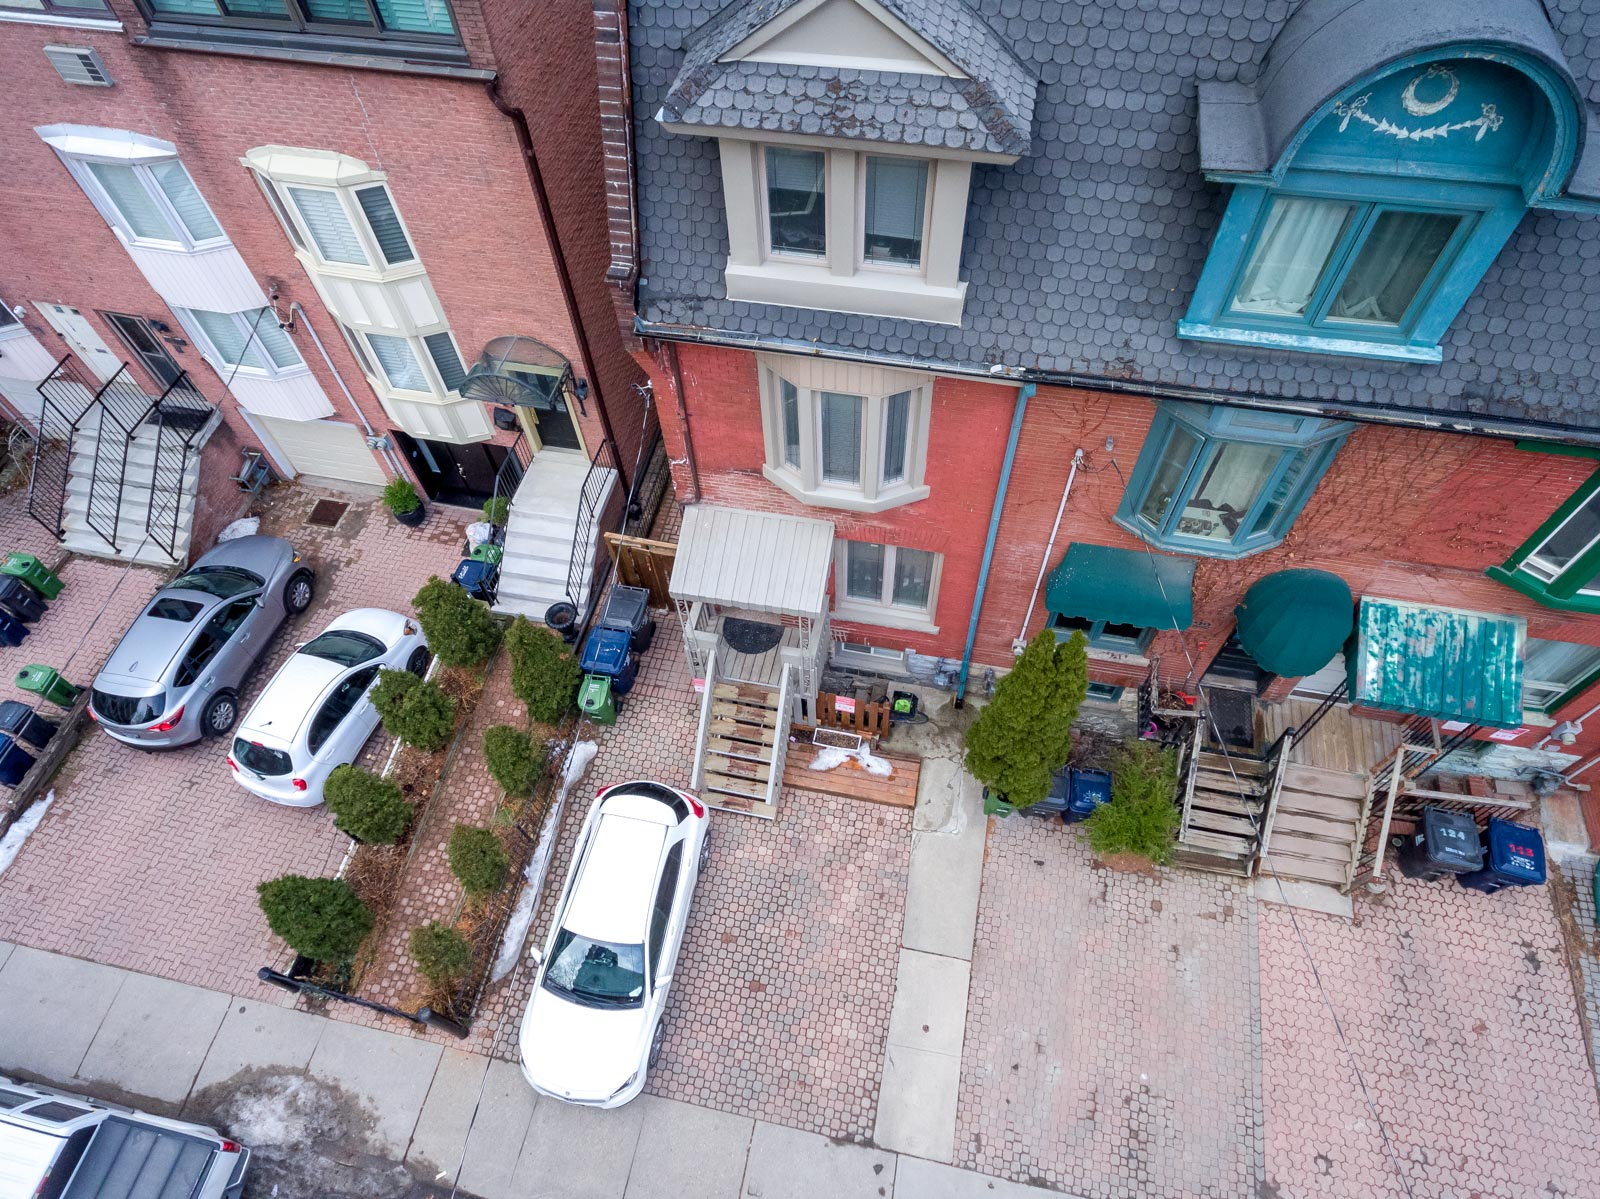 Drone photo of 120 McGill St, a red-brick Victorian house.